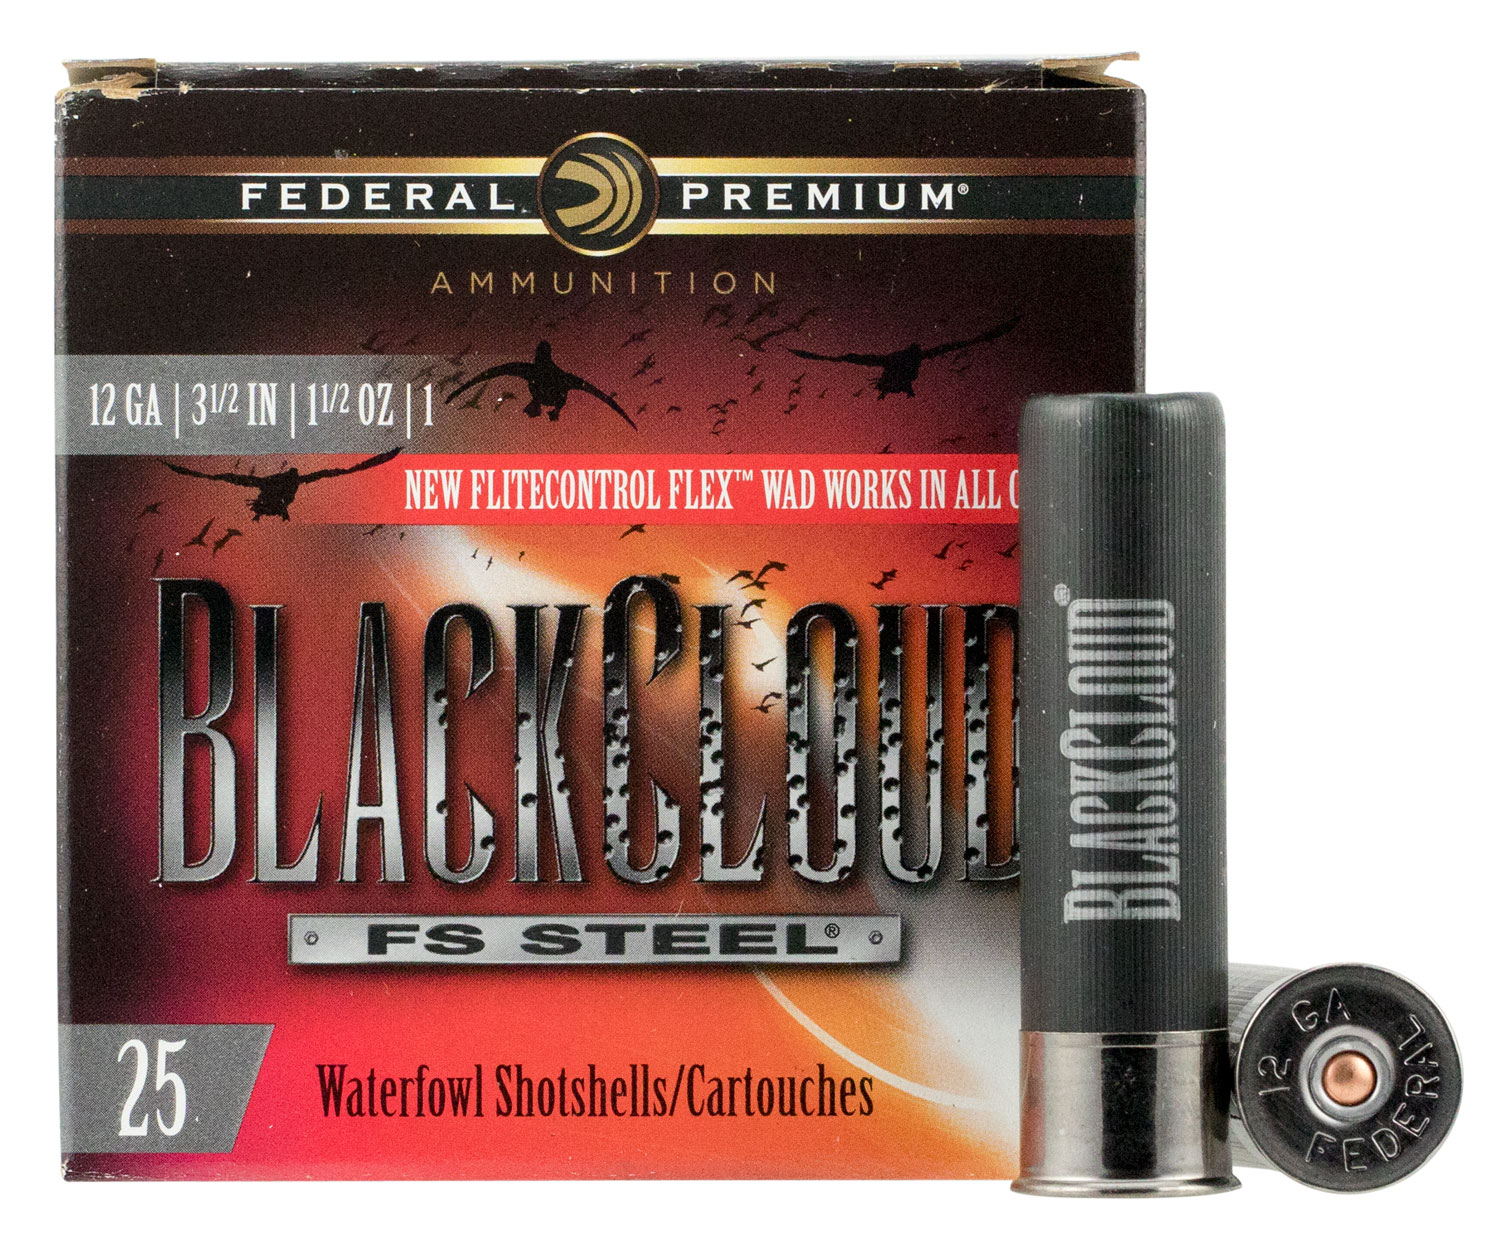 Federal PWBX1341 Black Cloud FS Steel 12 Gauge 3.50